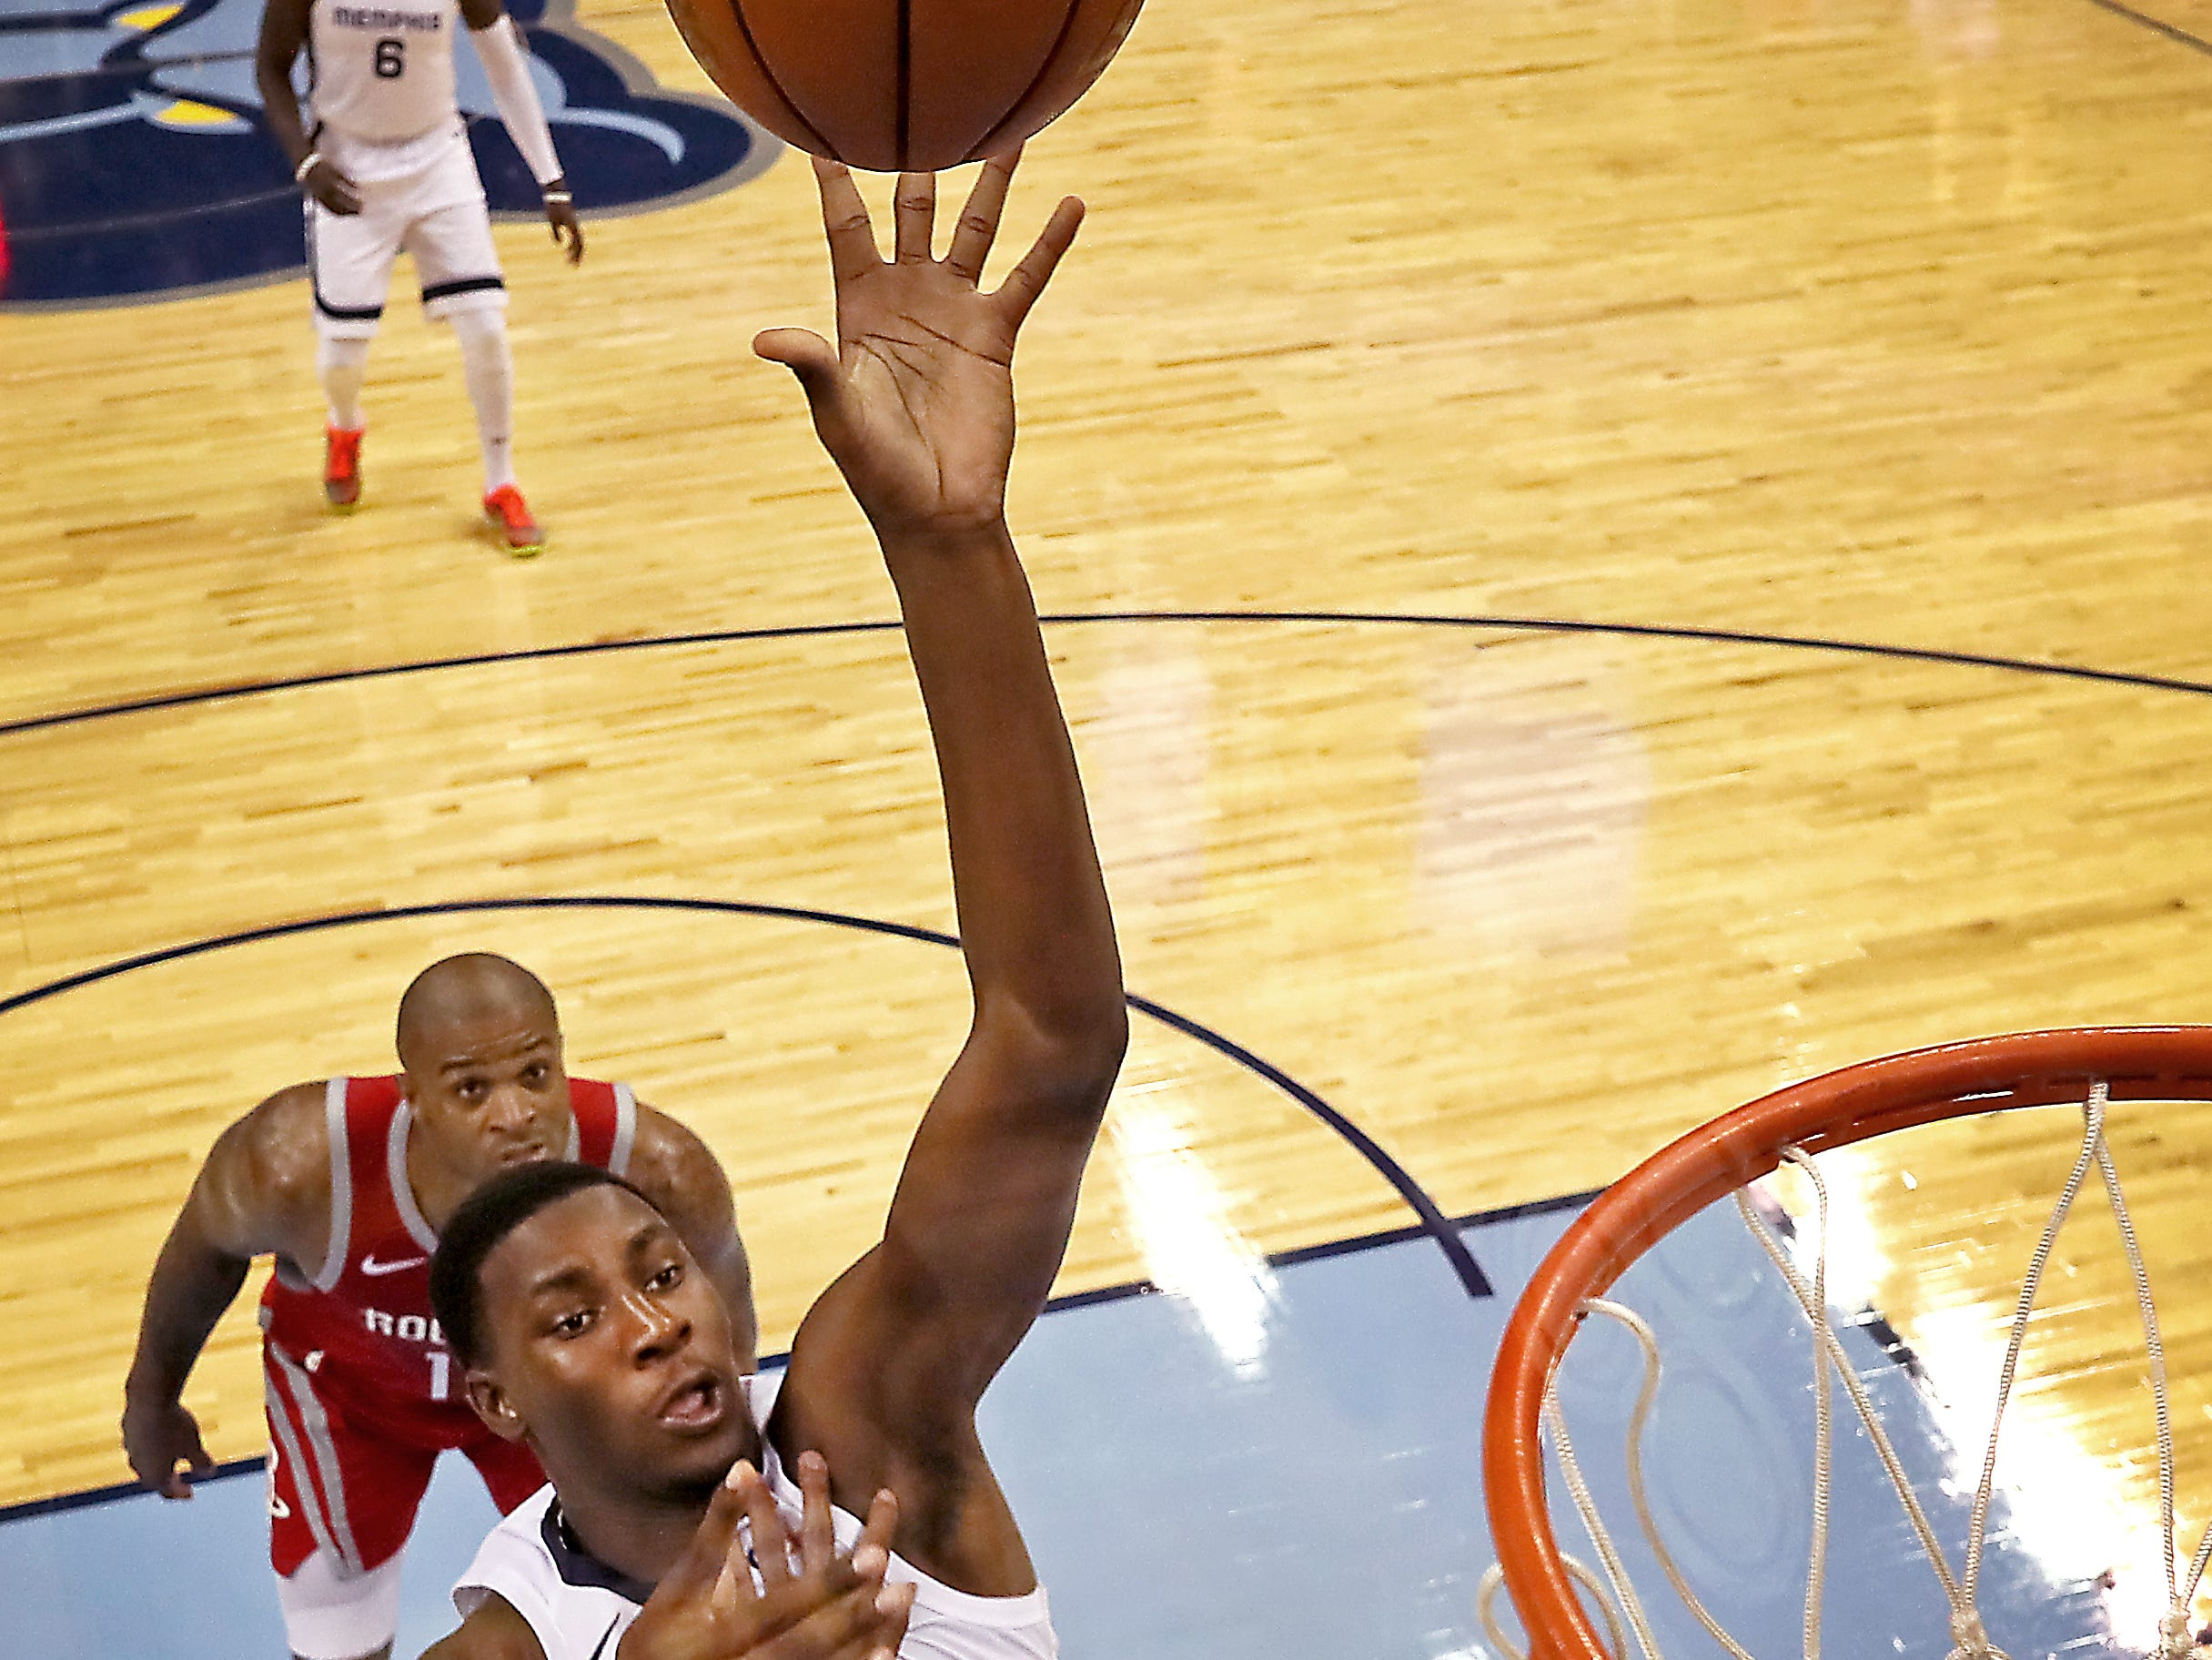 Memphis Grizzlies forward Jaren Jackson Jr. makes a shot over Houston Rockets forward Carmelo Anthony during their preseason game at the FedExForum on Friday, Oct. 12, 2018.